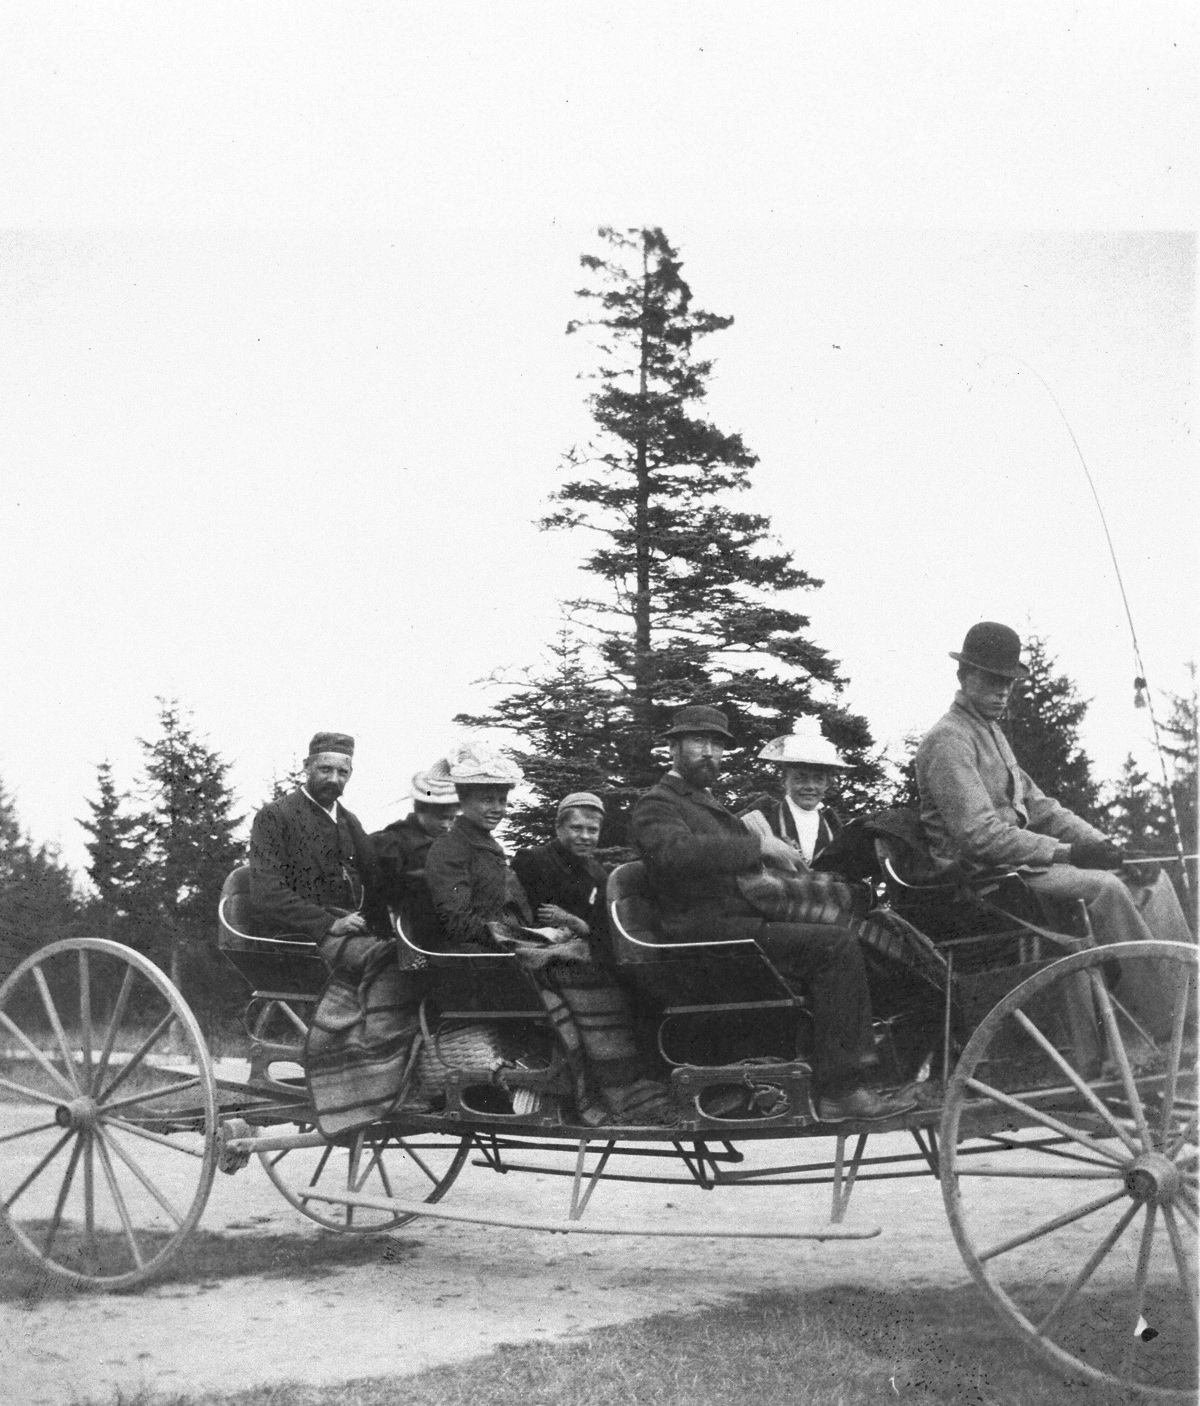 Buckboard Party with Driver in Derby Hat